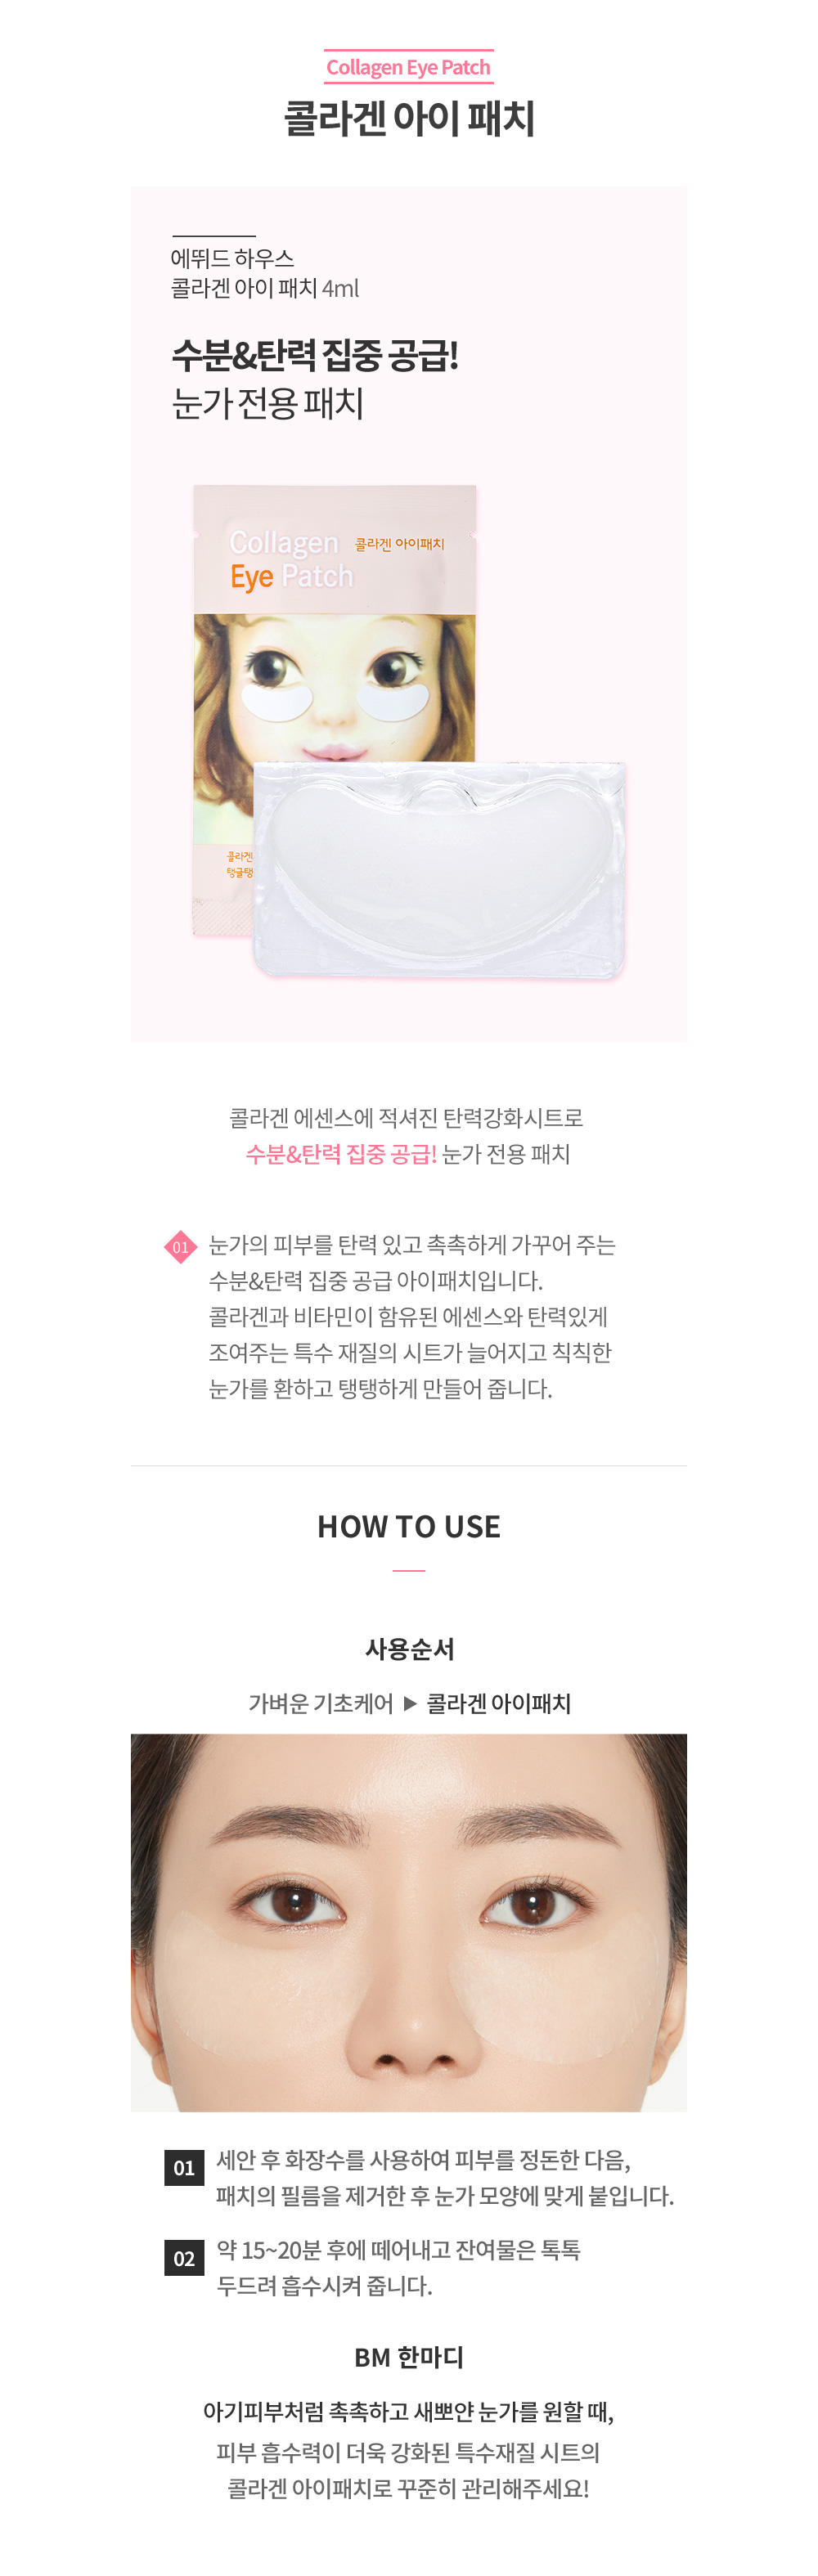 ETUDE HOUSE Collagen Eye Patch 10pc 4ml #Skincare